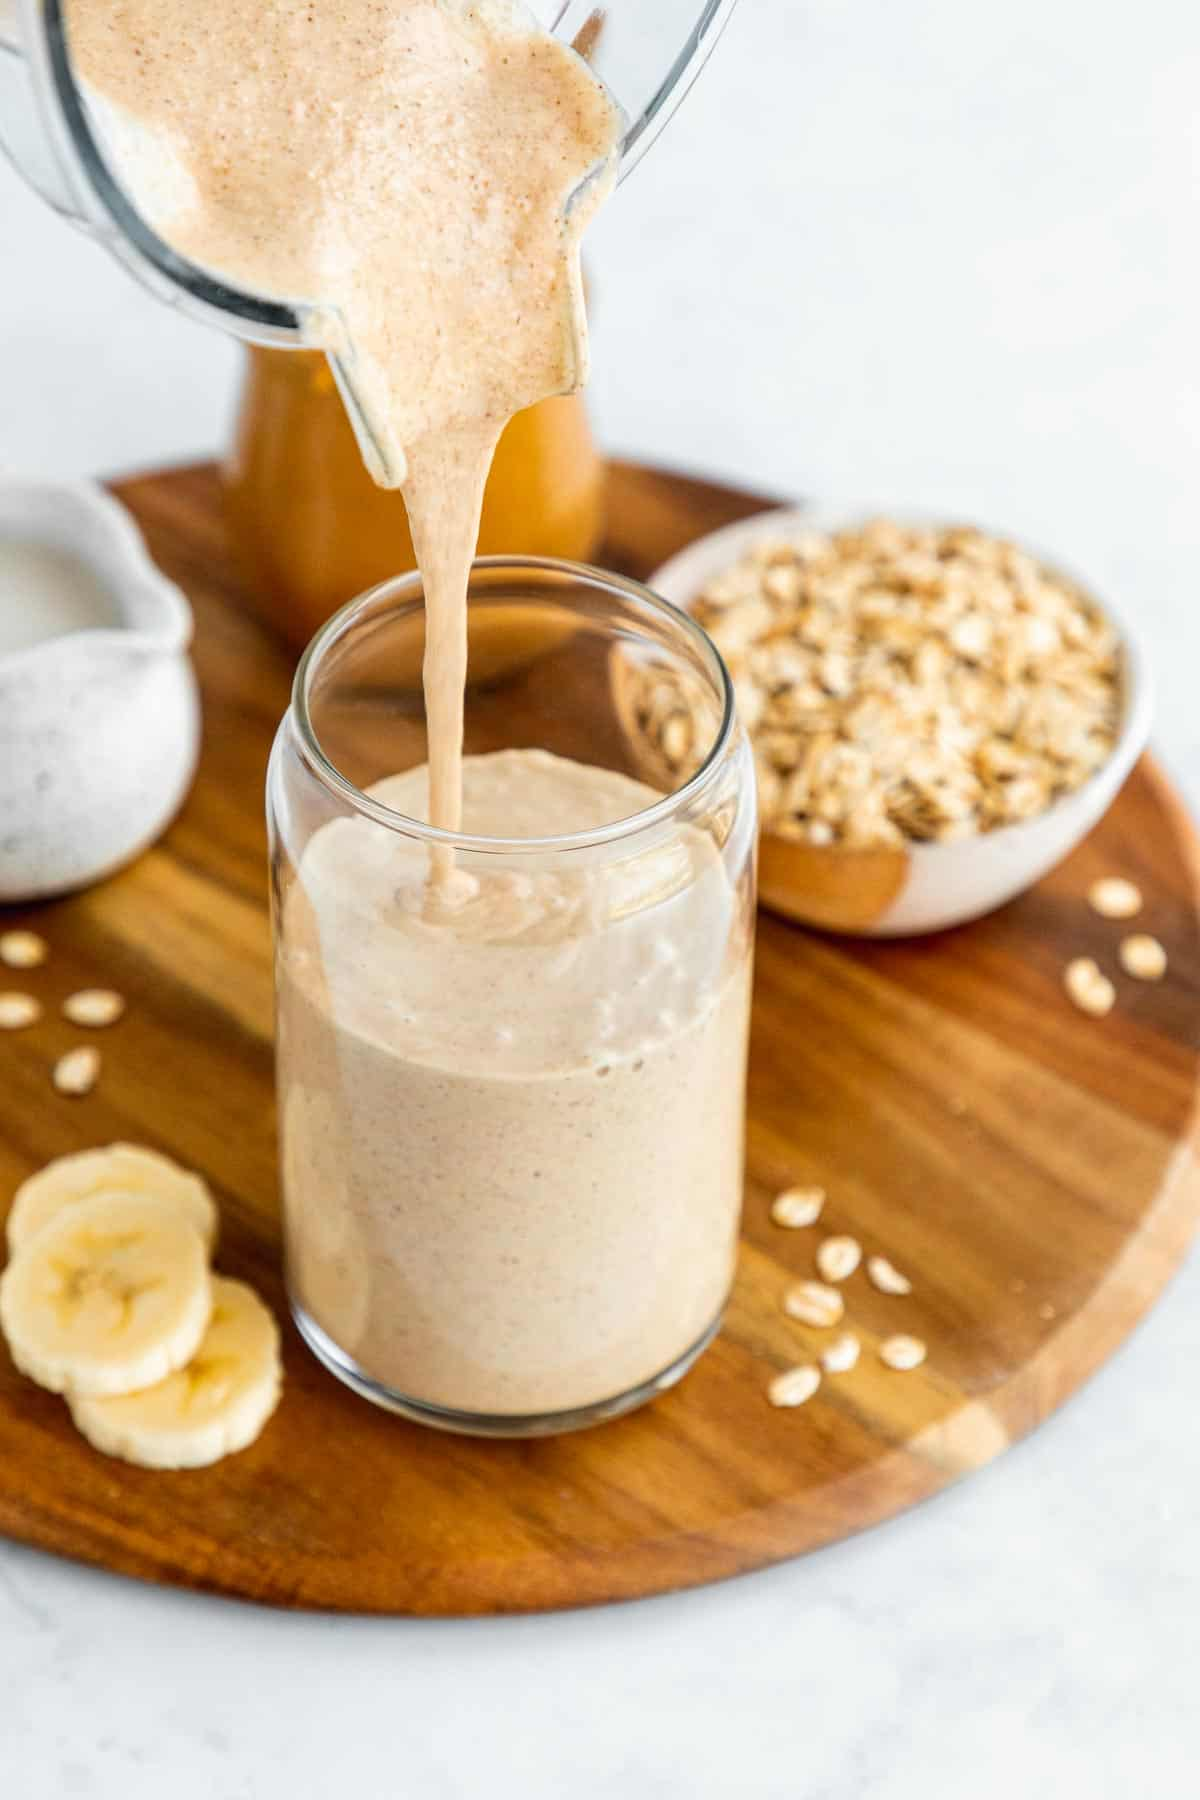 pouring an oatmeal smoothie into a glass out of a vitamix blender